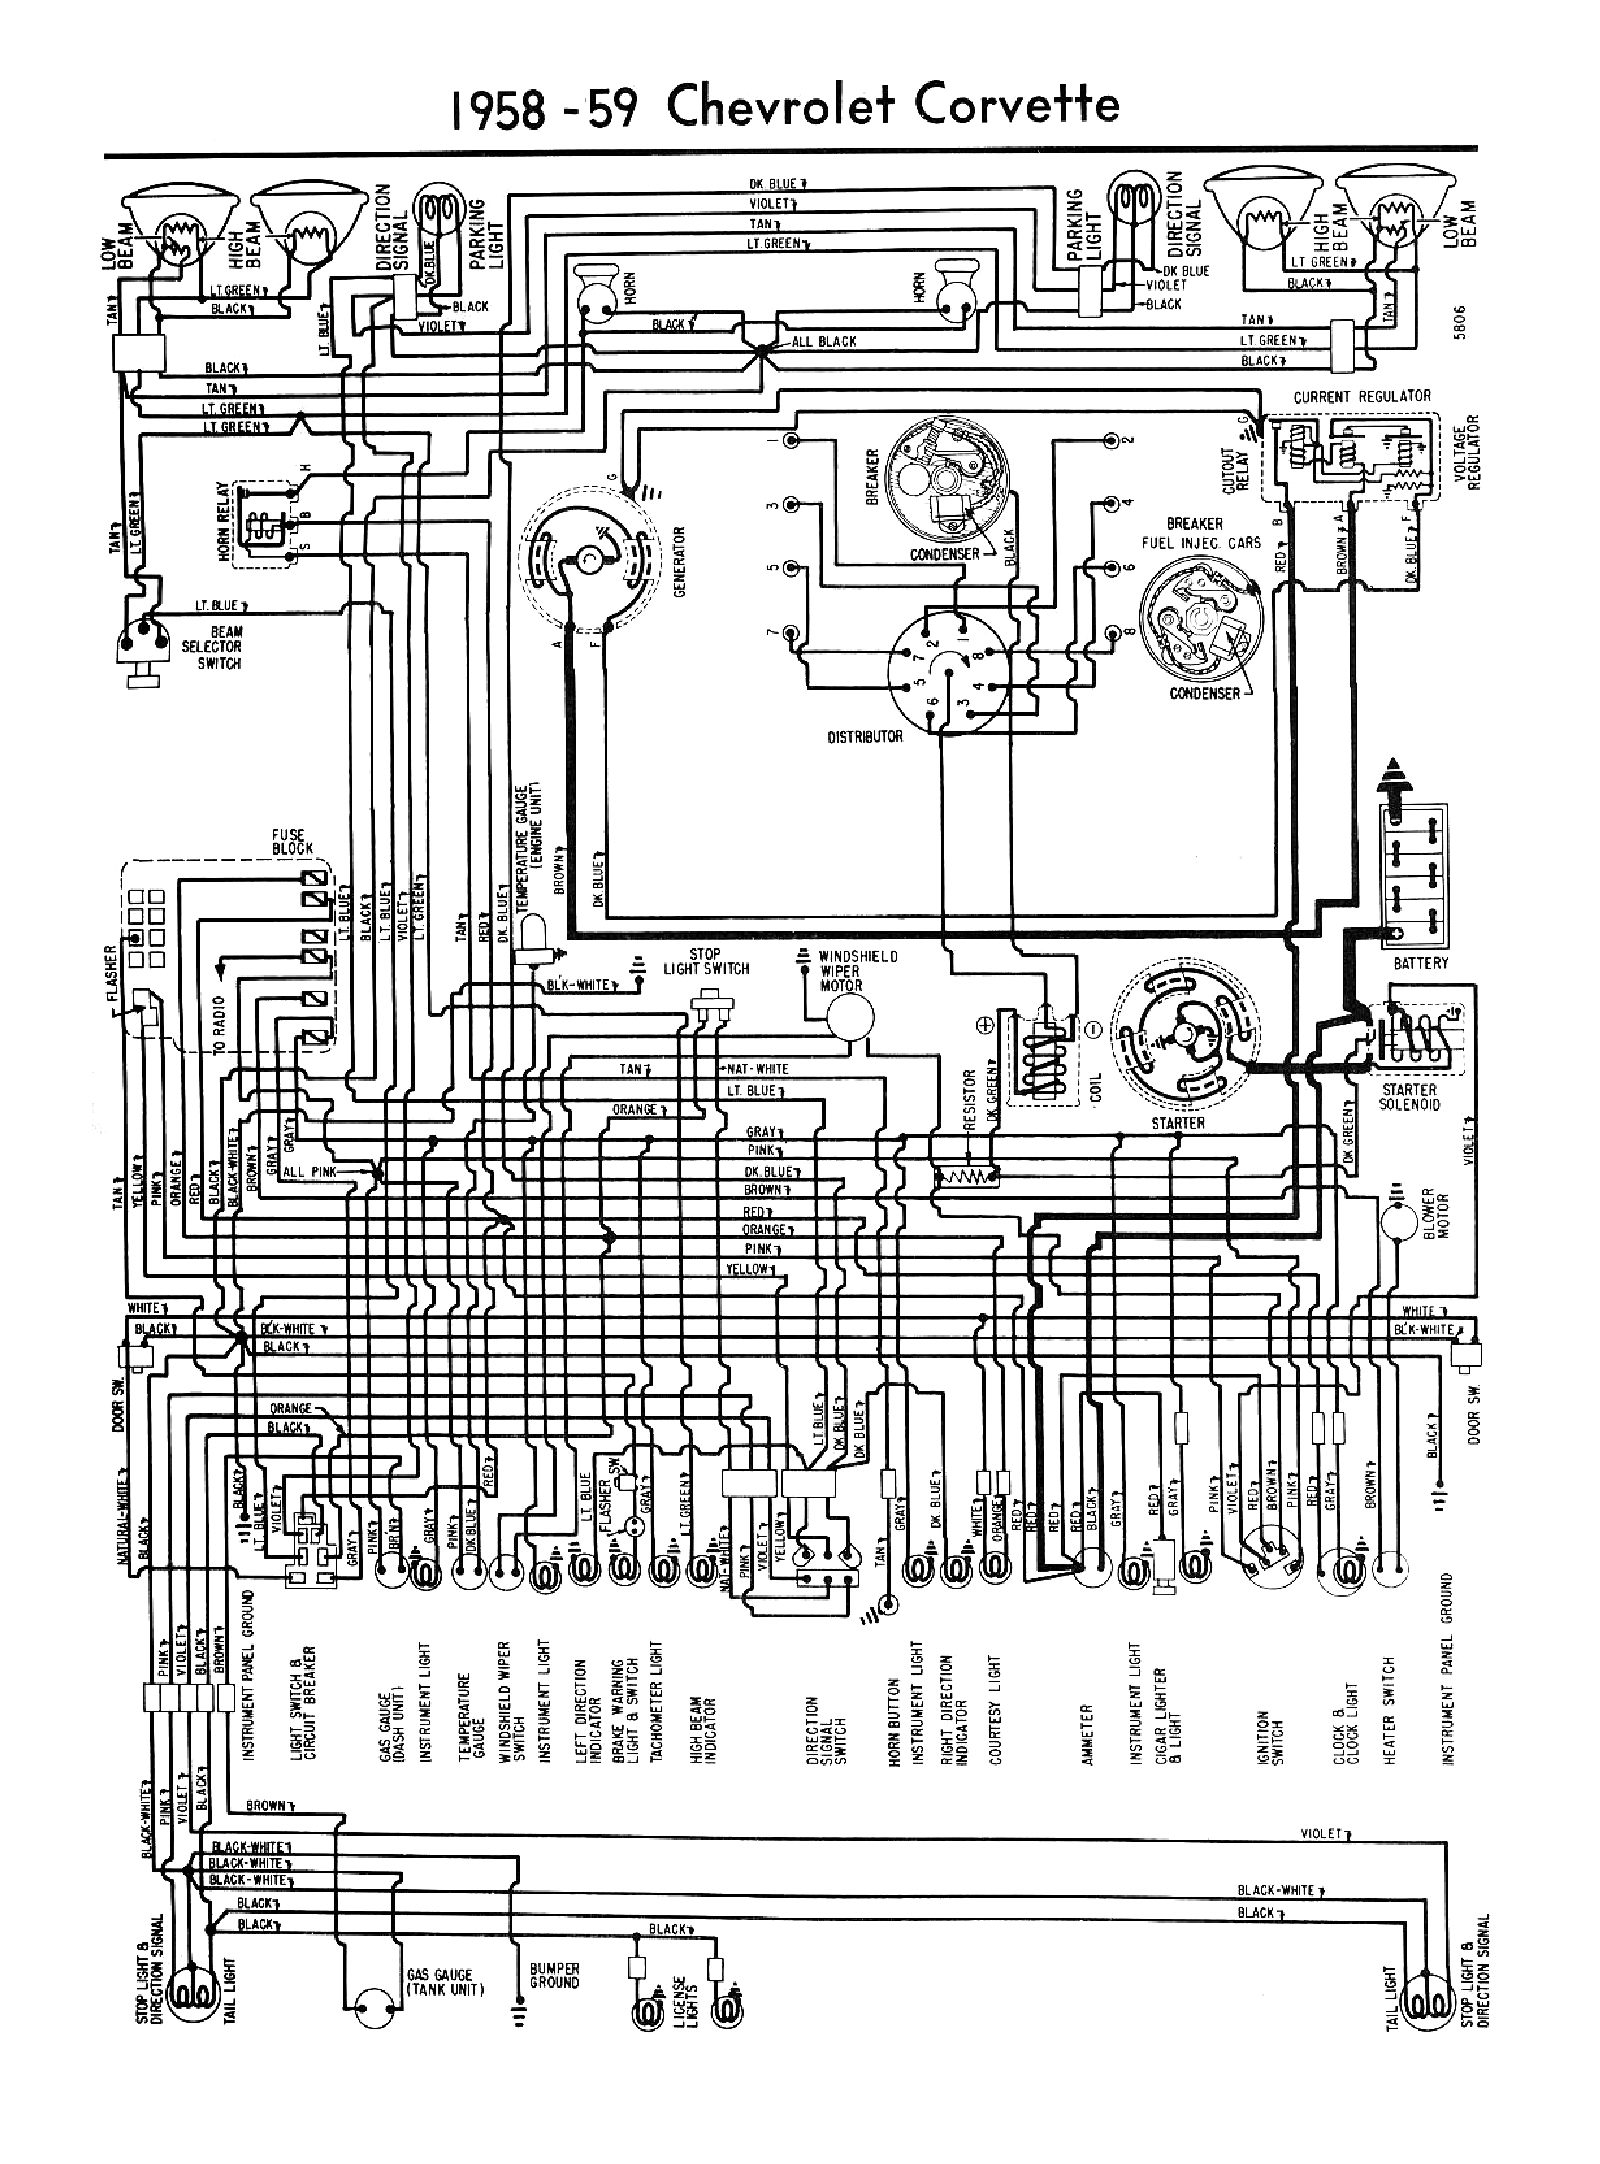 1955 corvette wiring diagram example electrical wiring diagram u2022 rh cranejapan co 1956 Chevy Ignition Switch Diagram 1957 Chevy Fuse Box Diagram